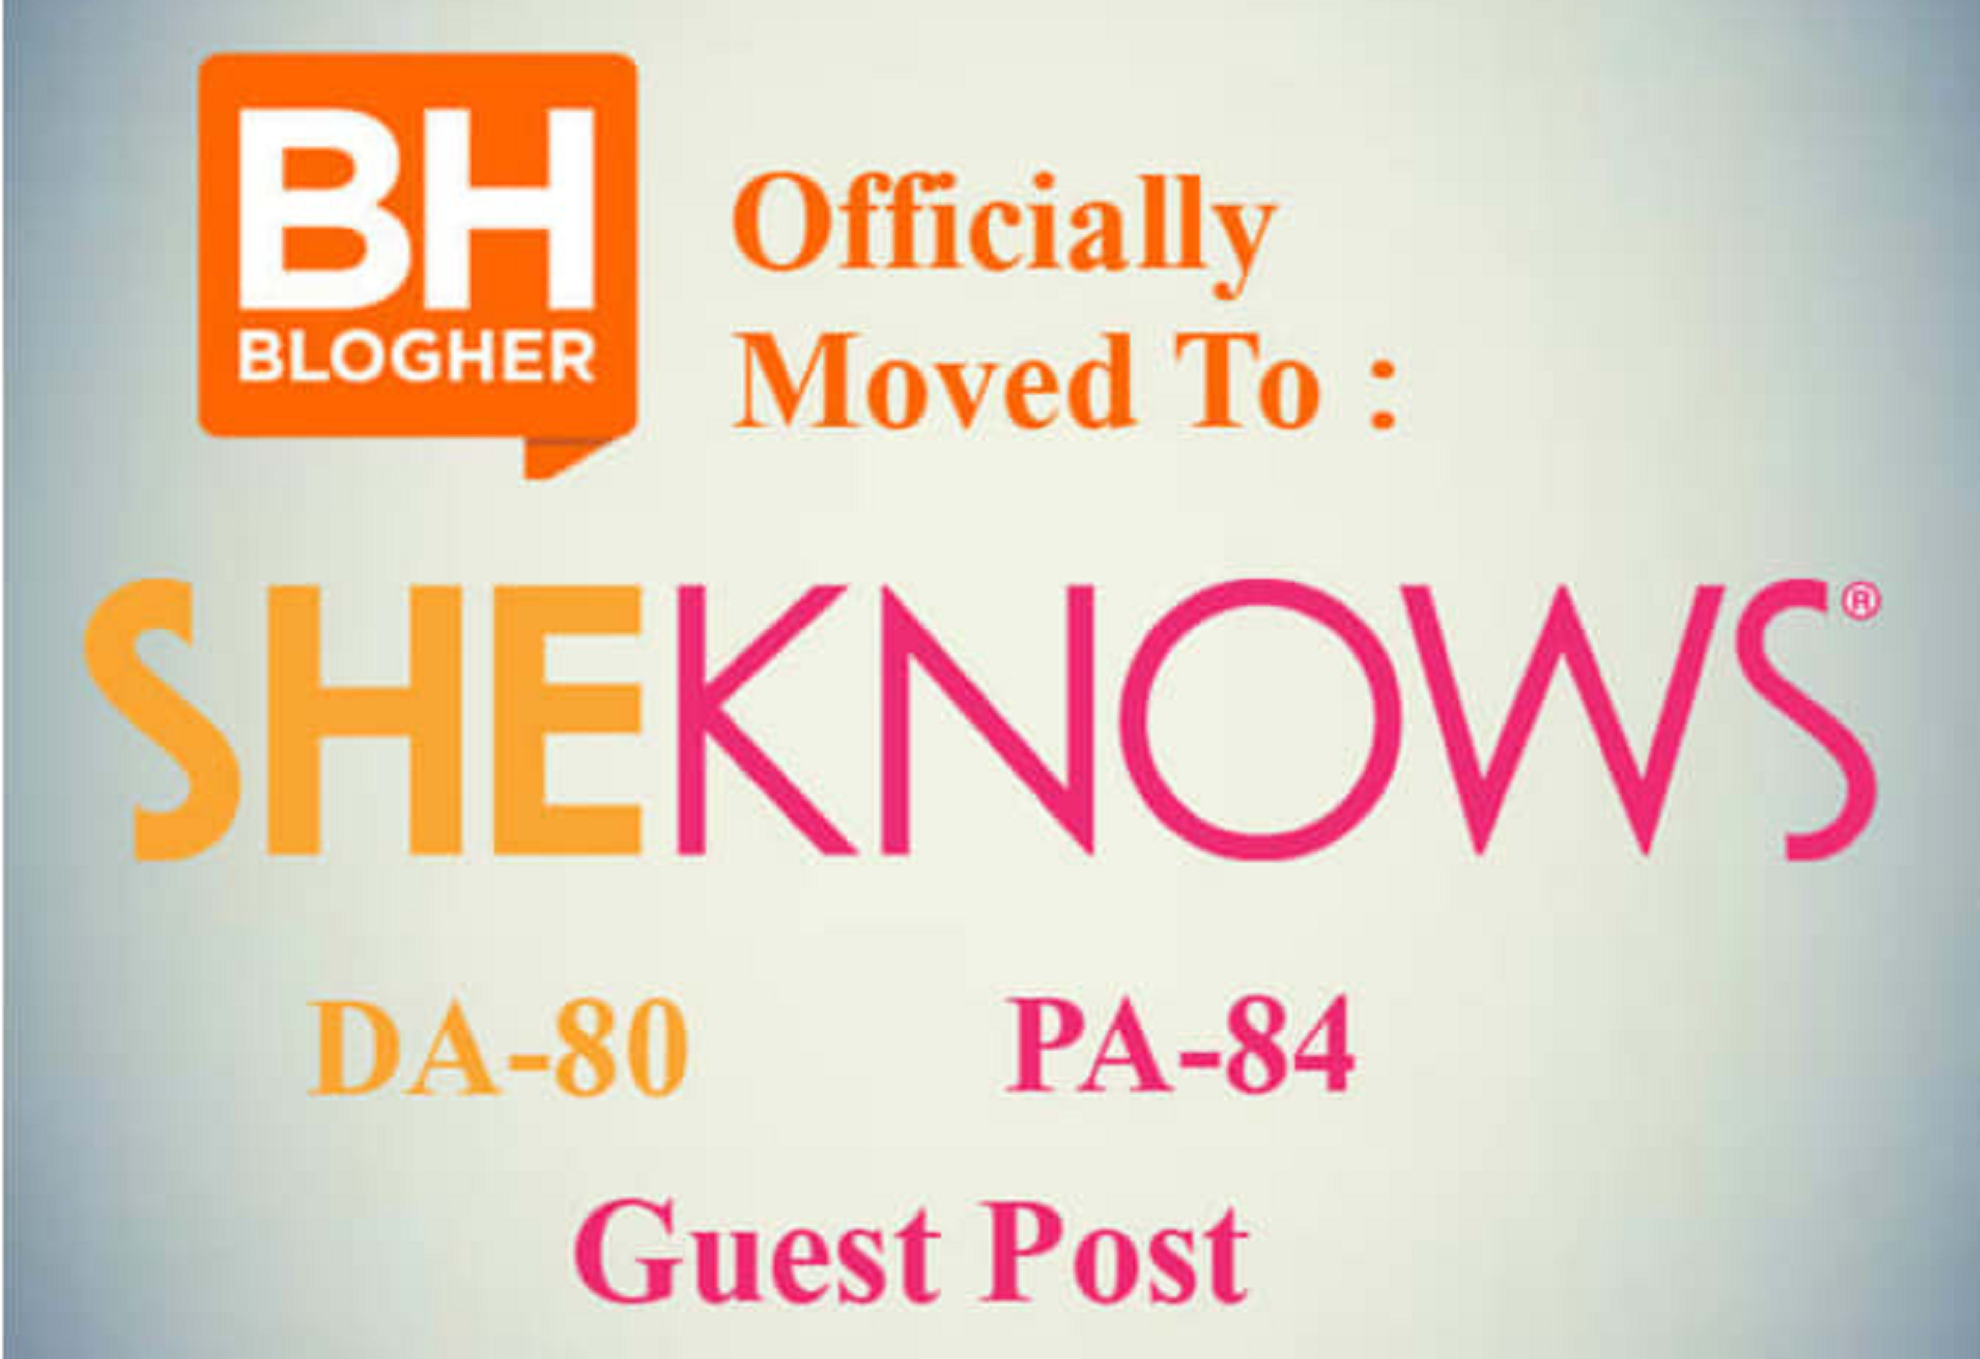 Publish Guest Post On SheKnows DA 80